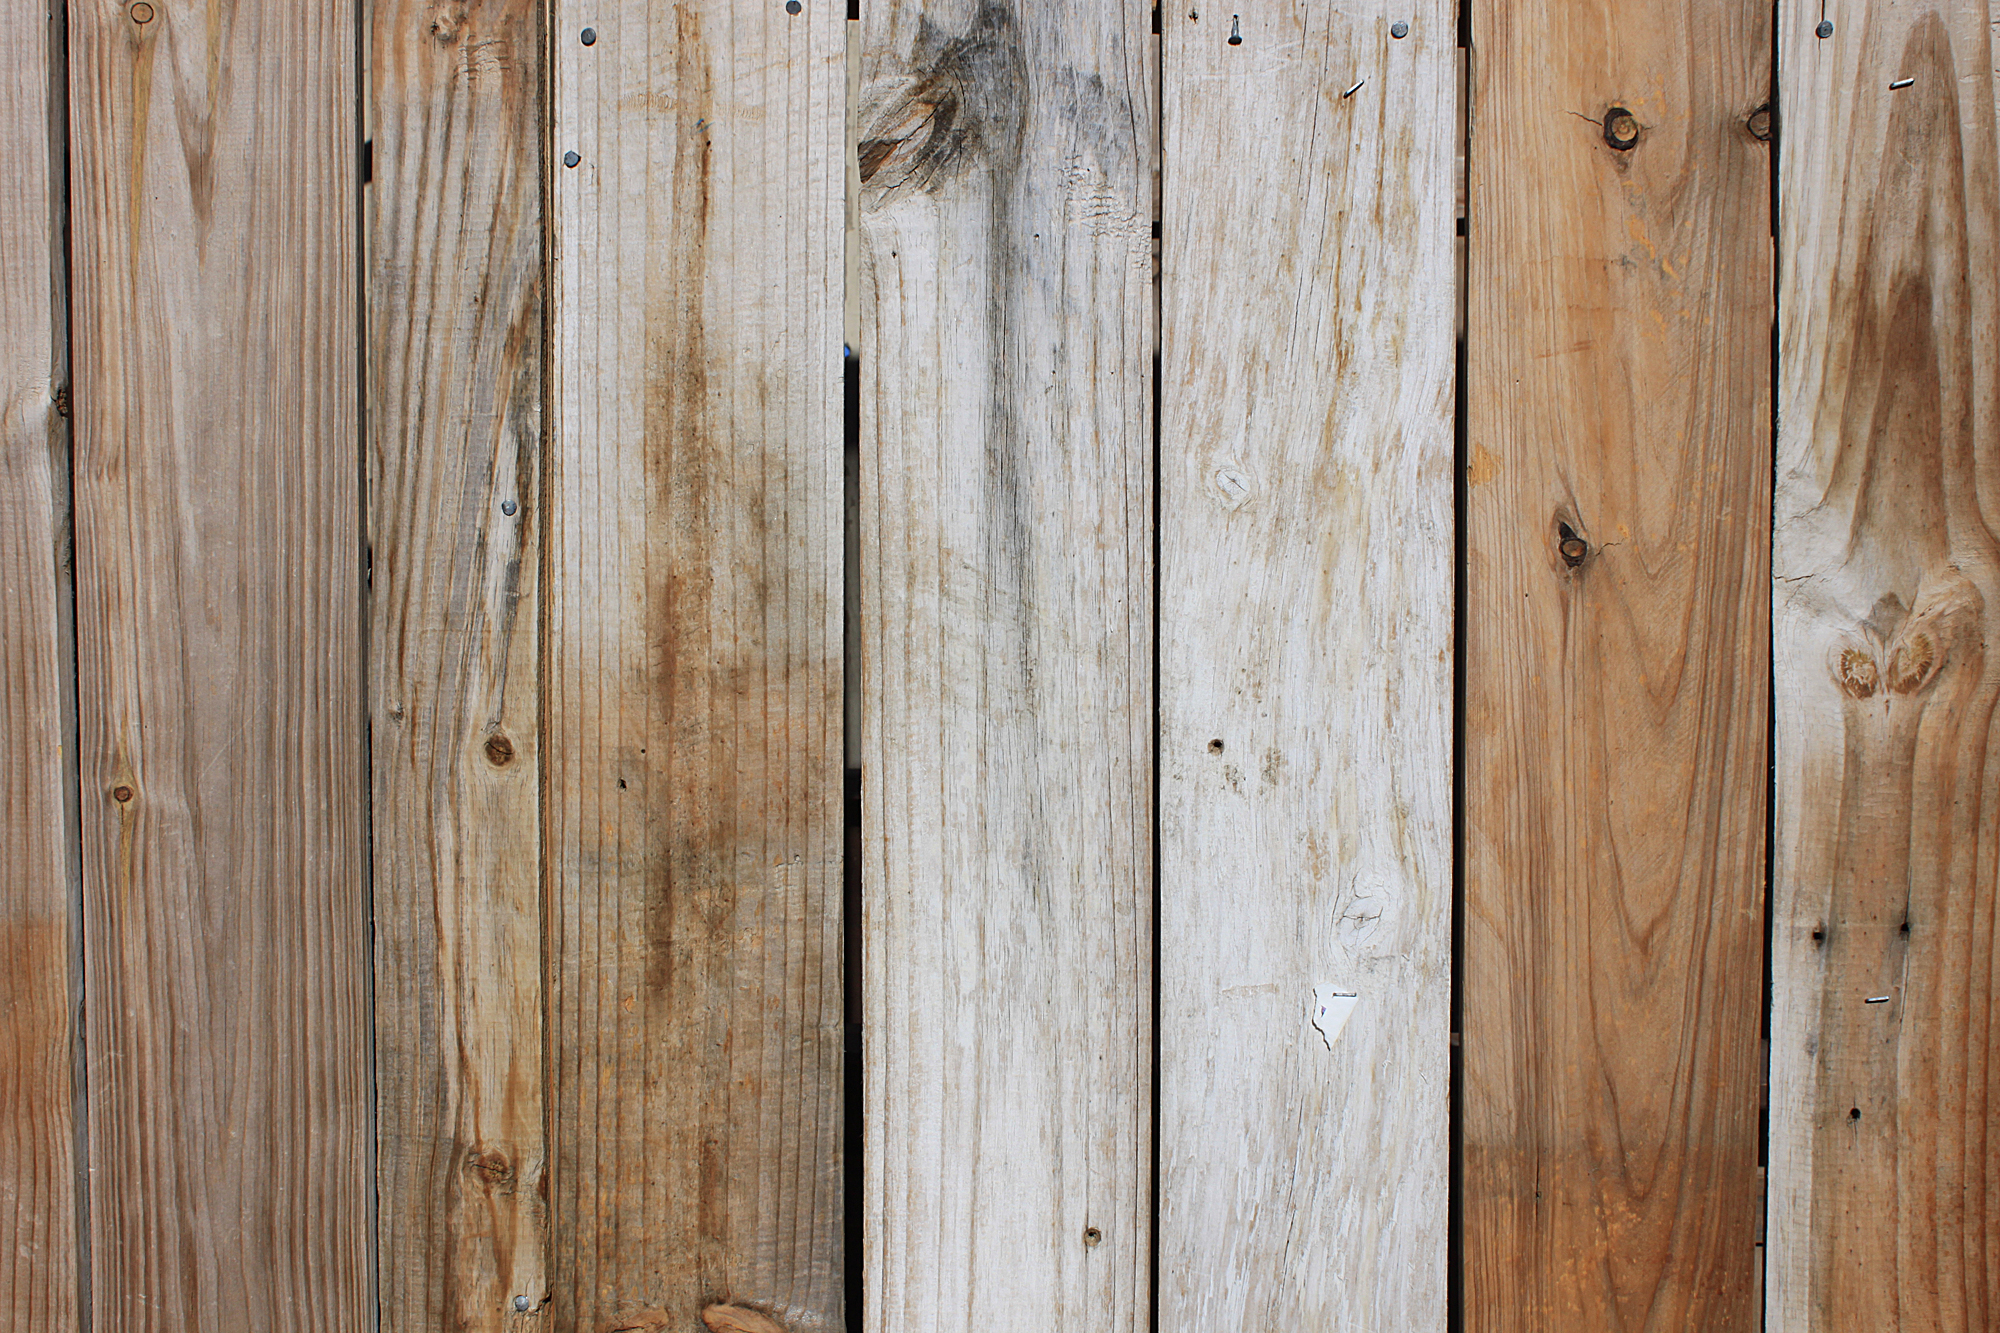 rustic wood plank texture background